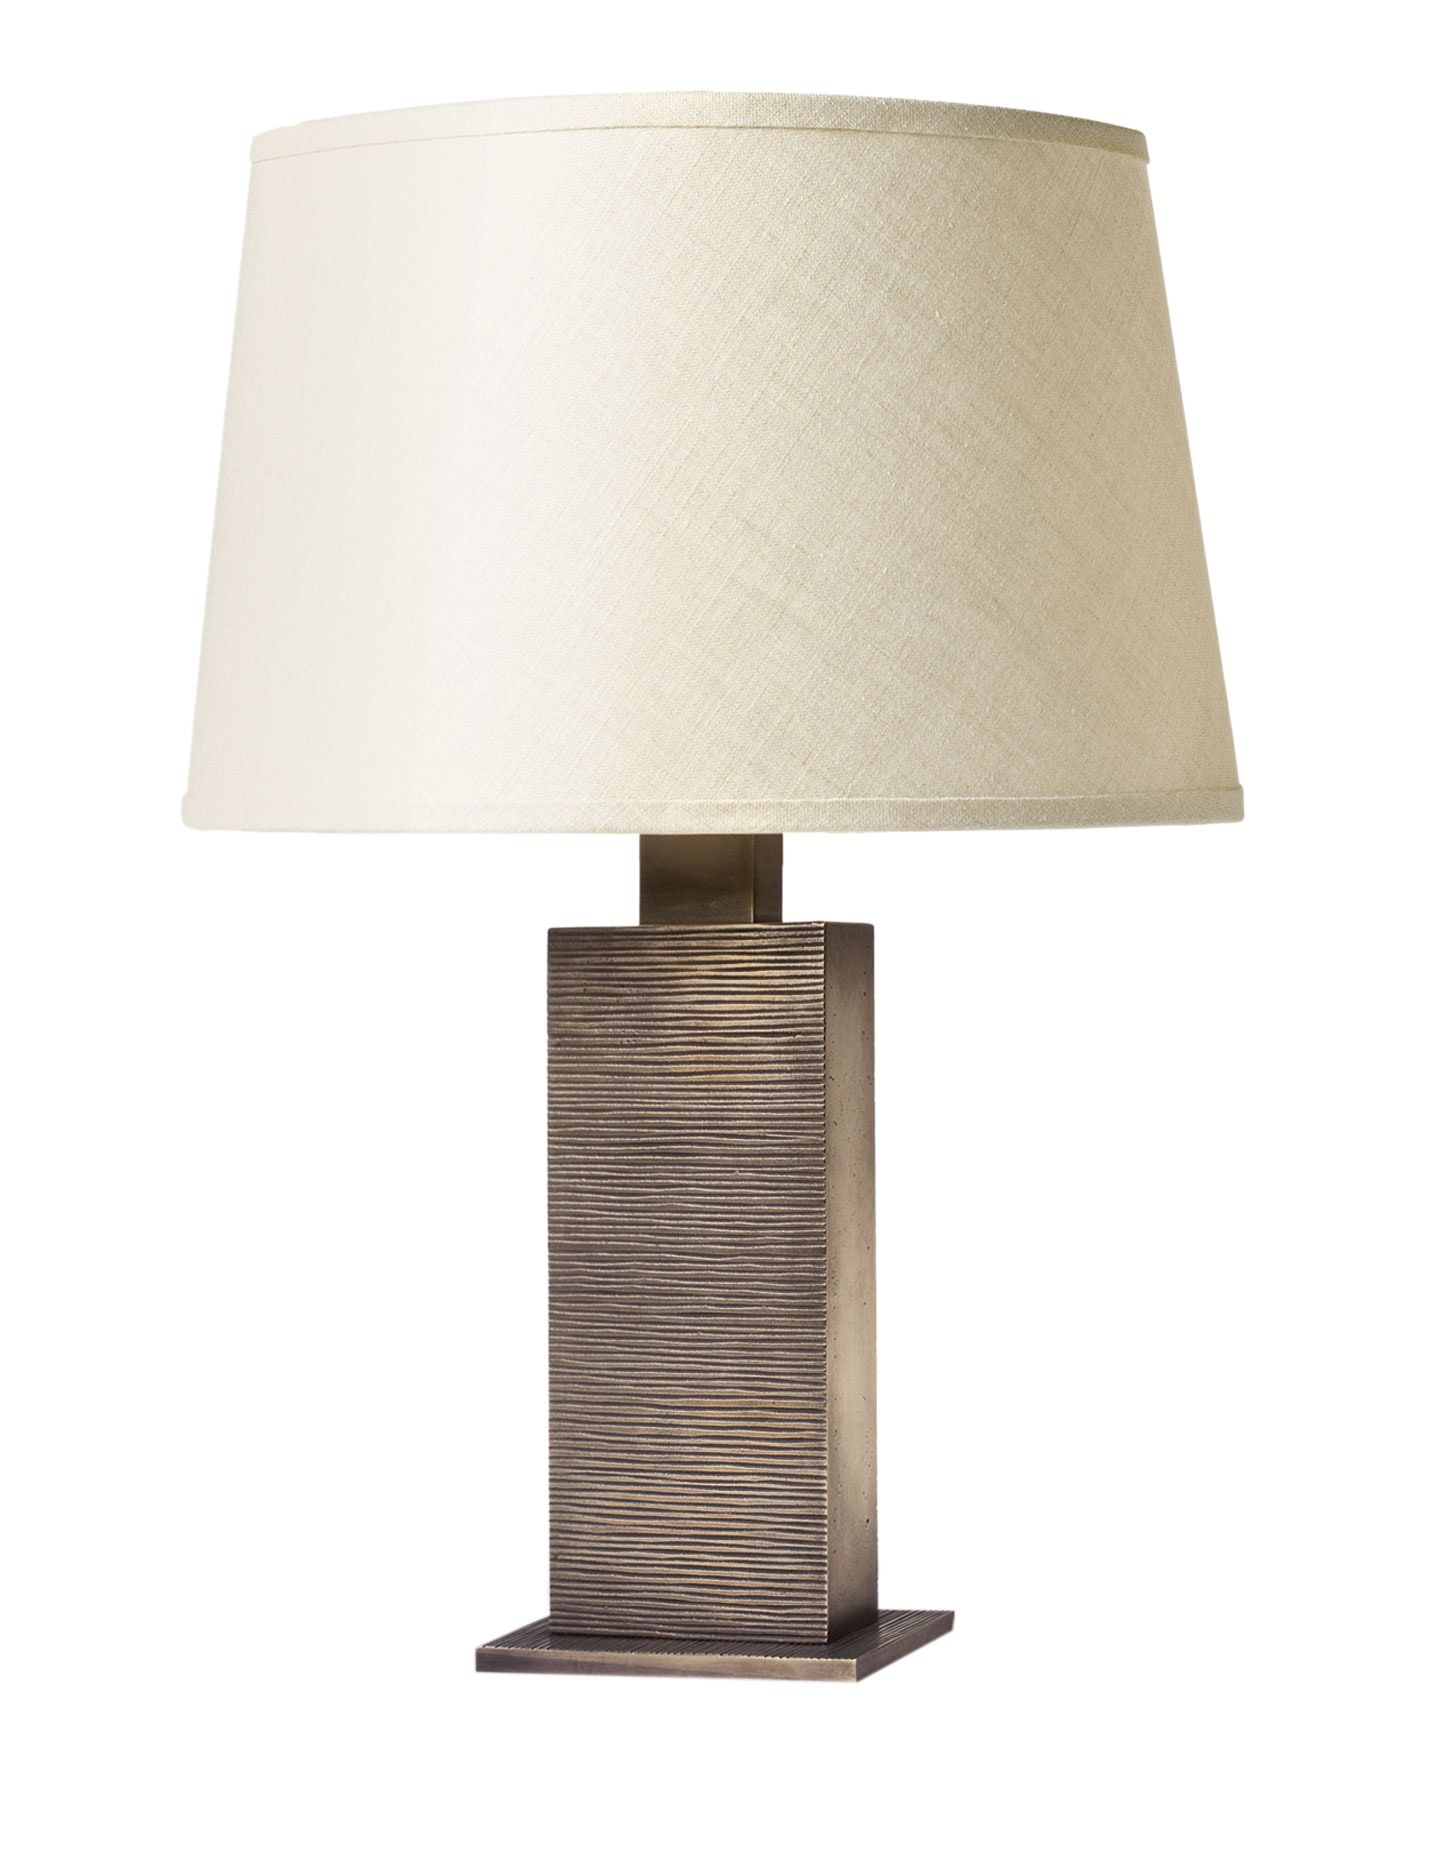 Buy Estero Table Lamp By Tuell + Reynolds  Quick